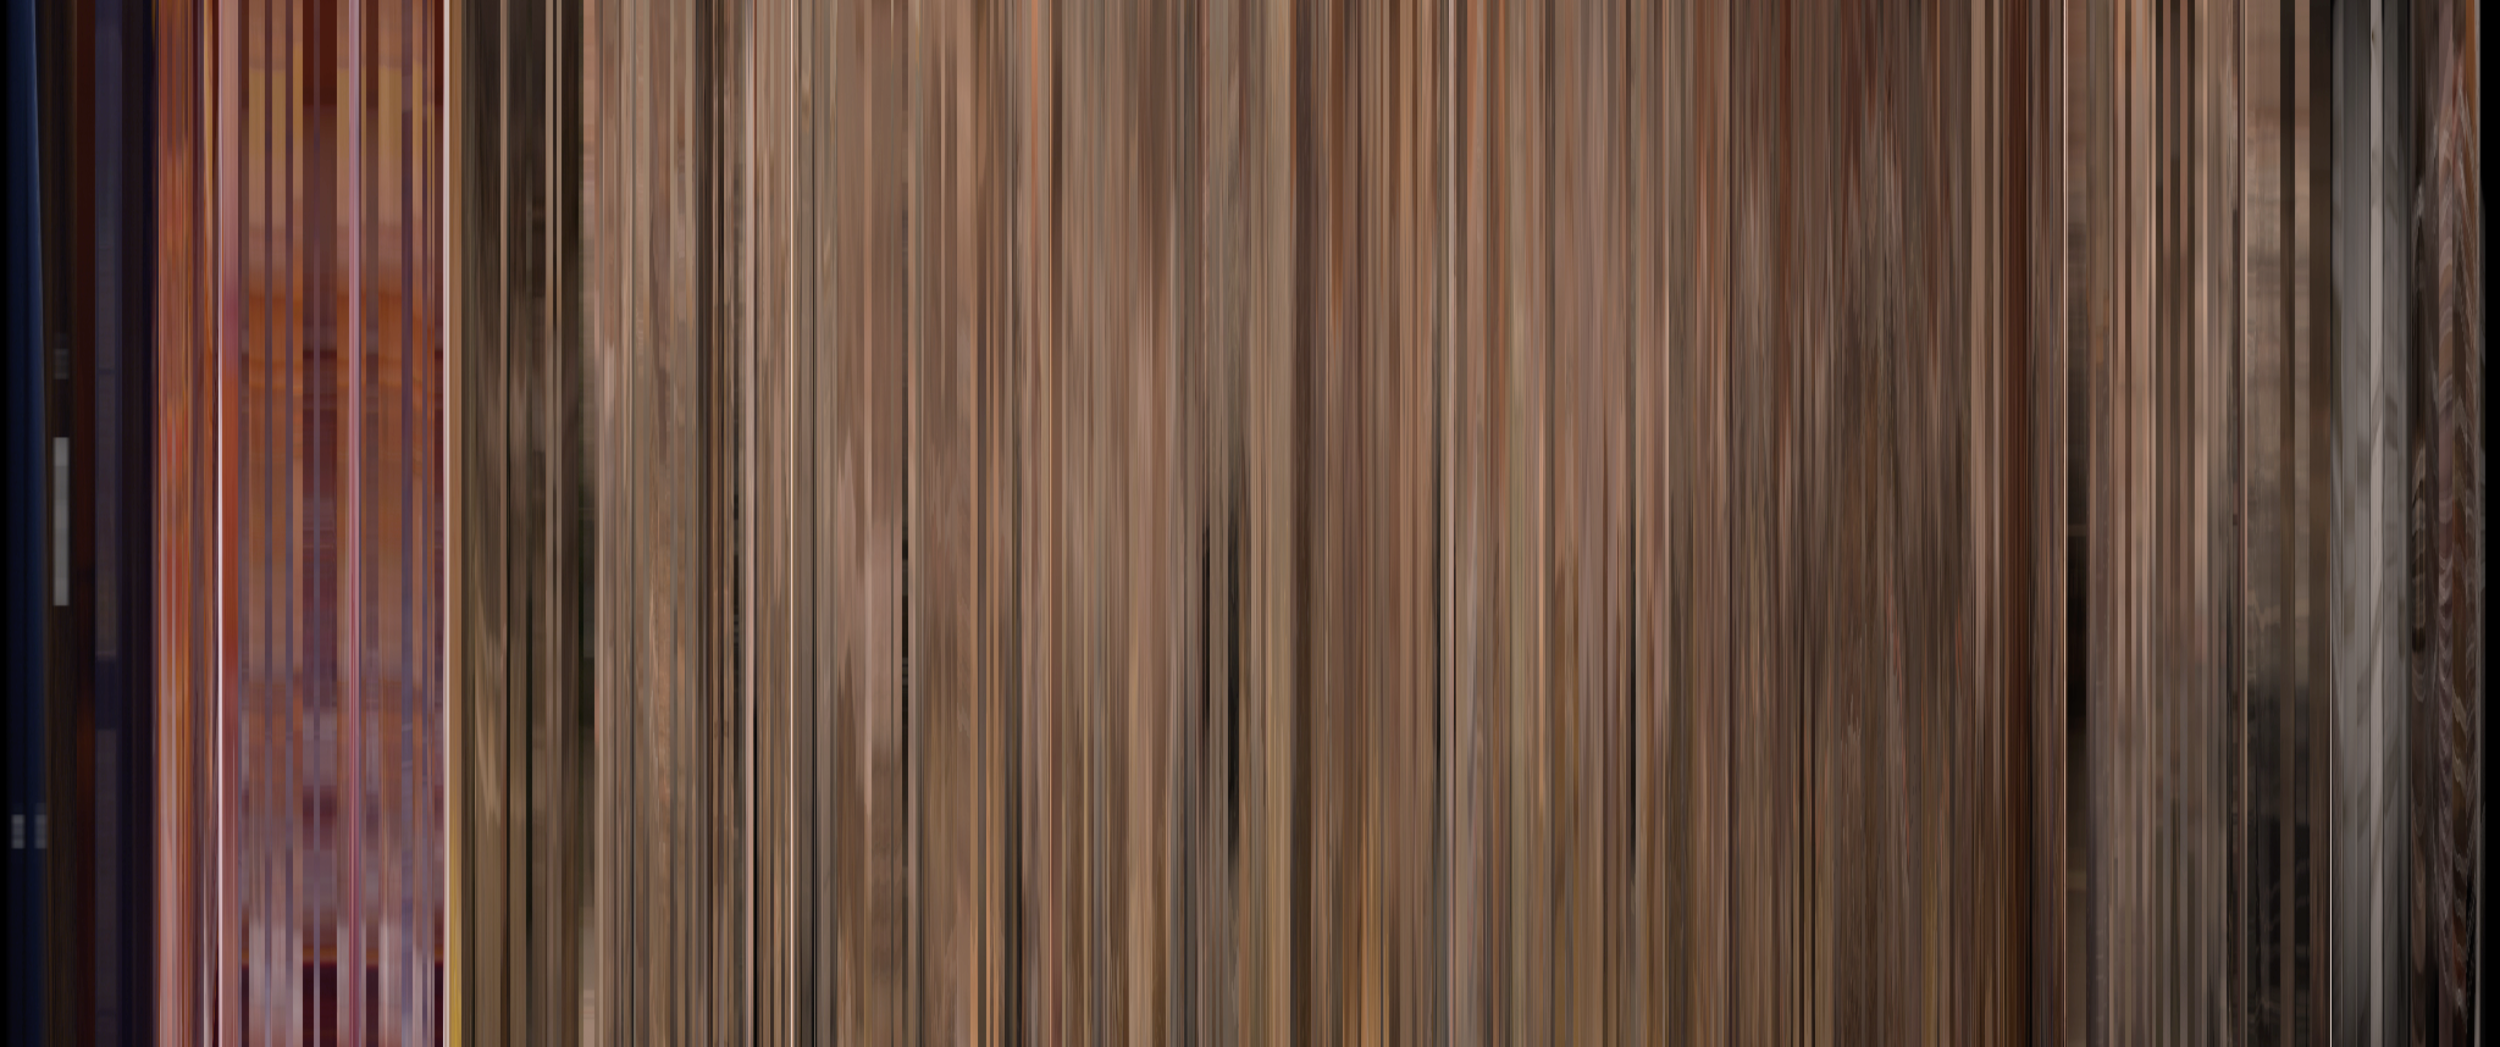 movie-barcode-the-disintegration-machine.png